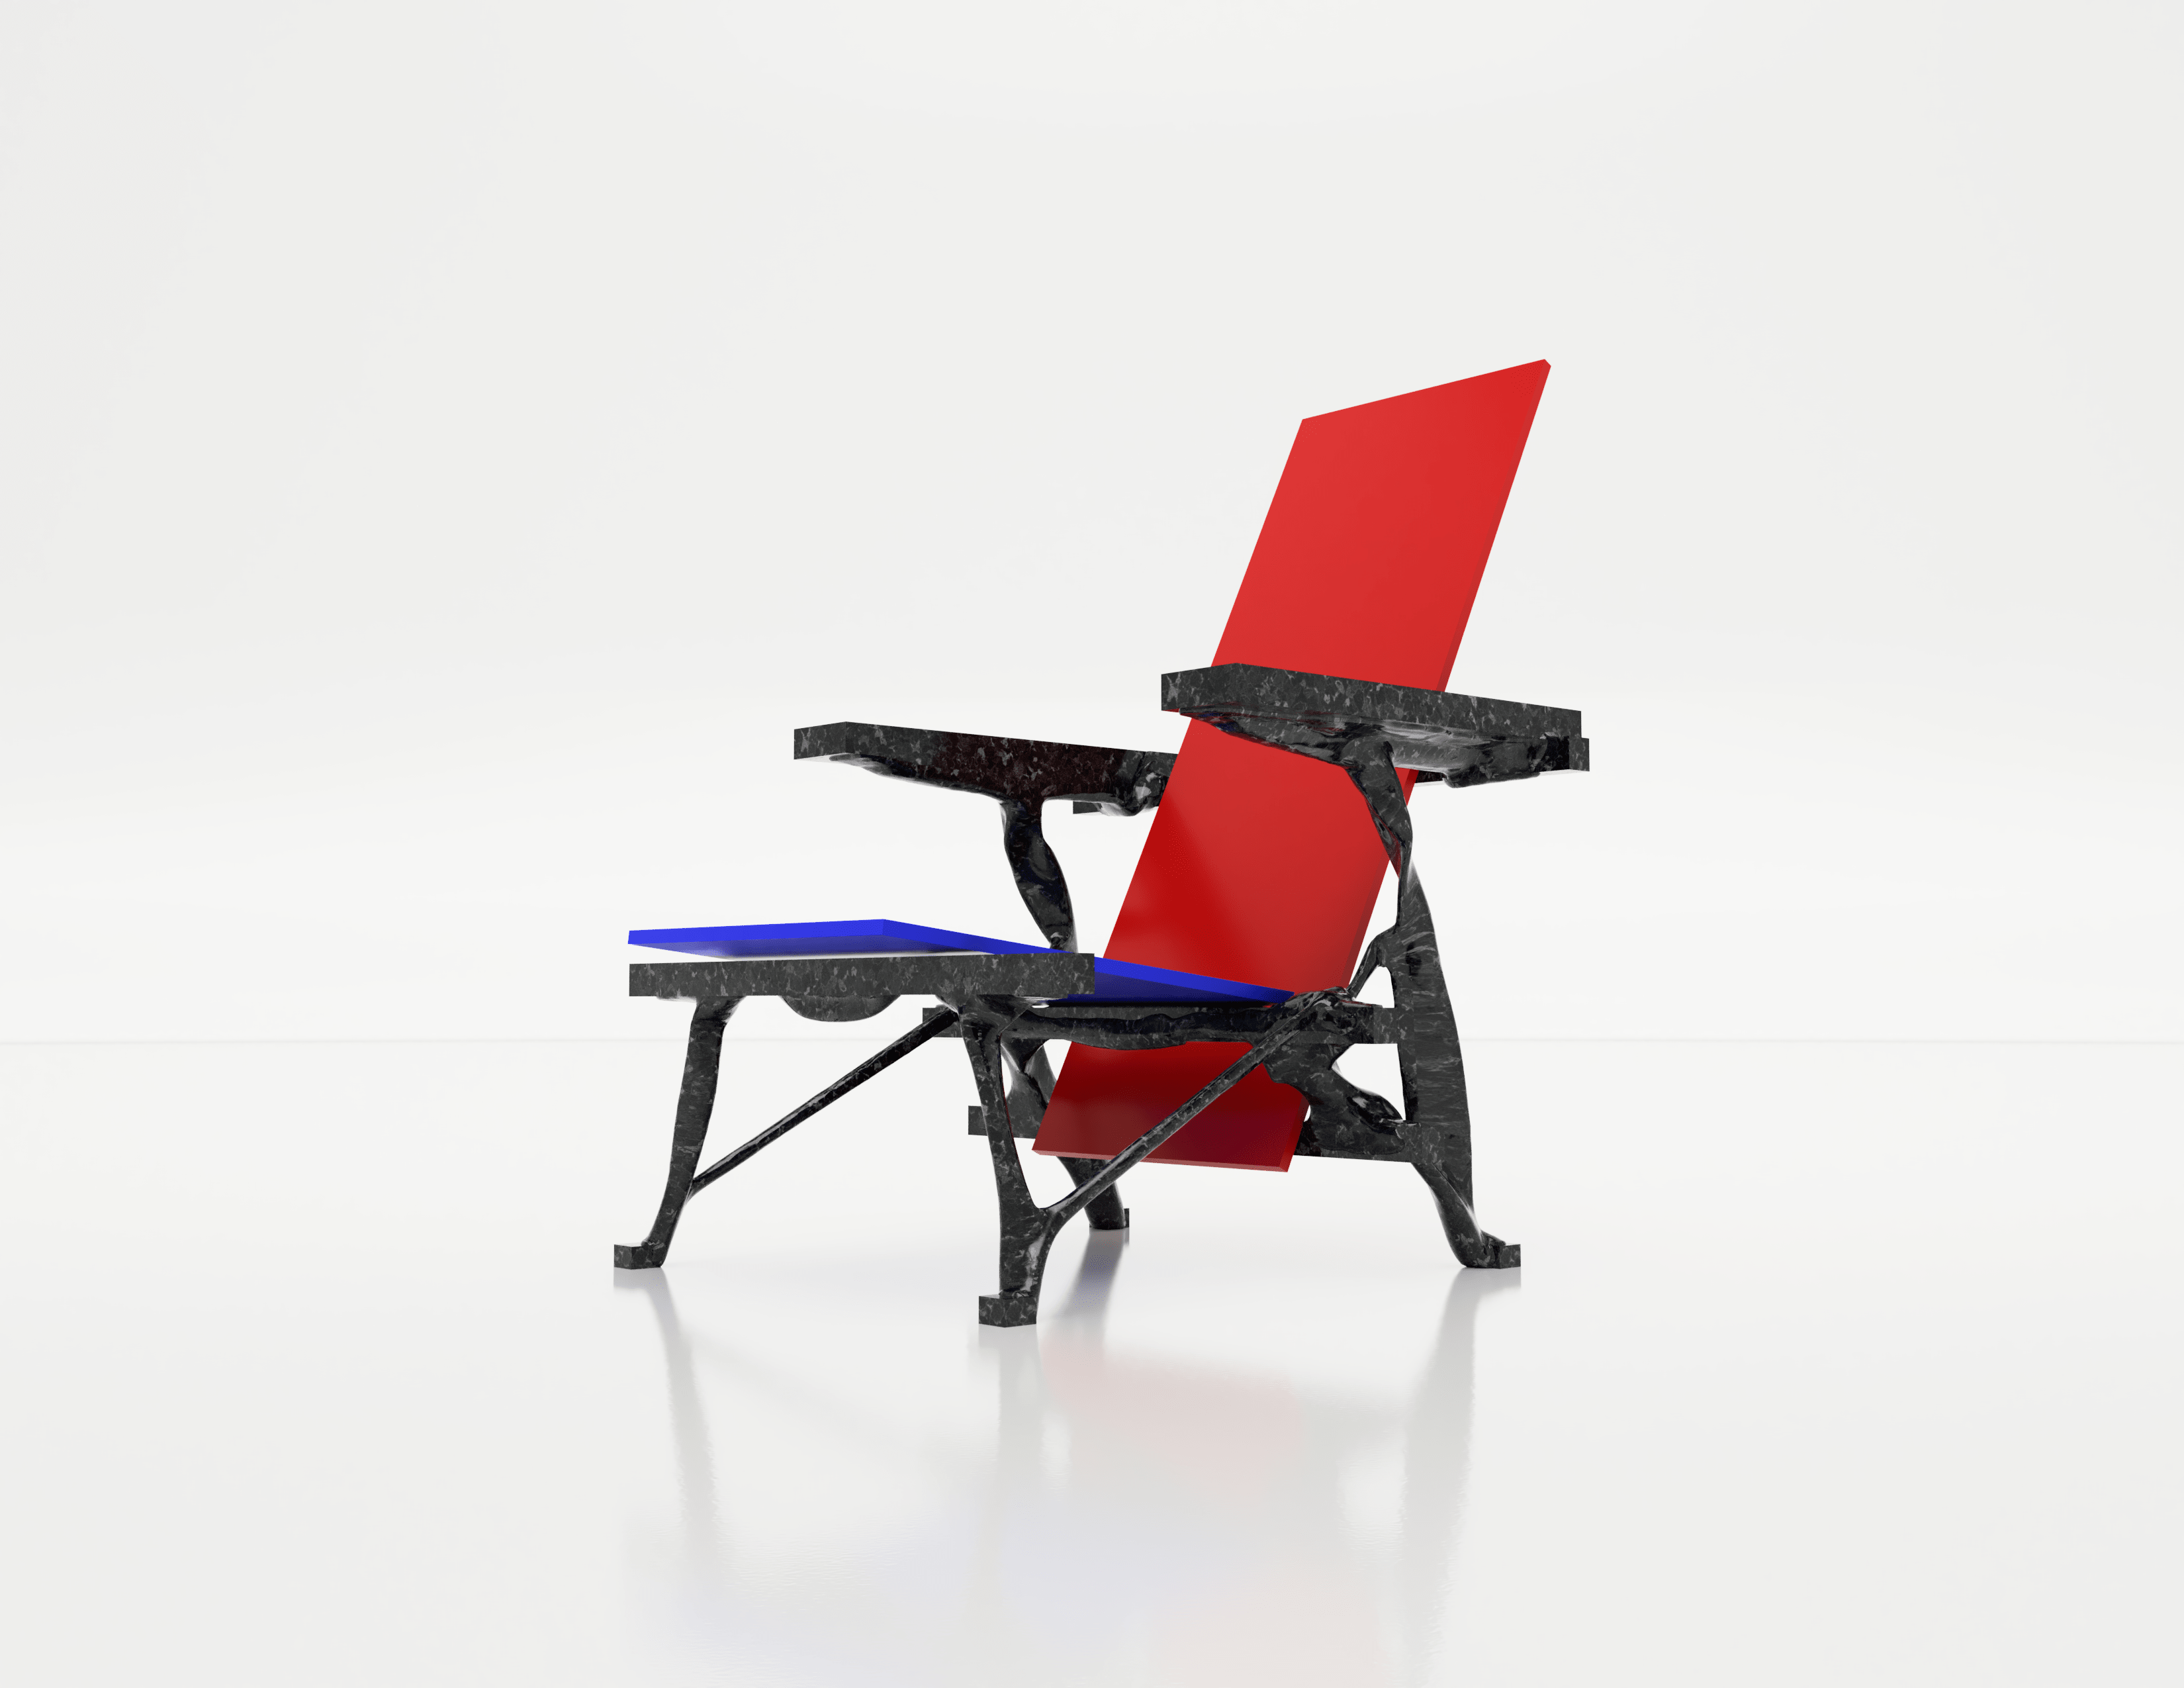 Redesigning Classic Chairs